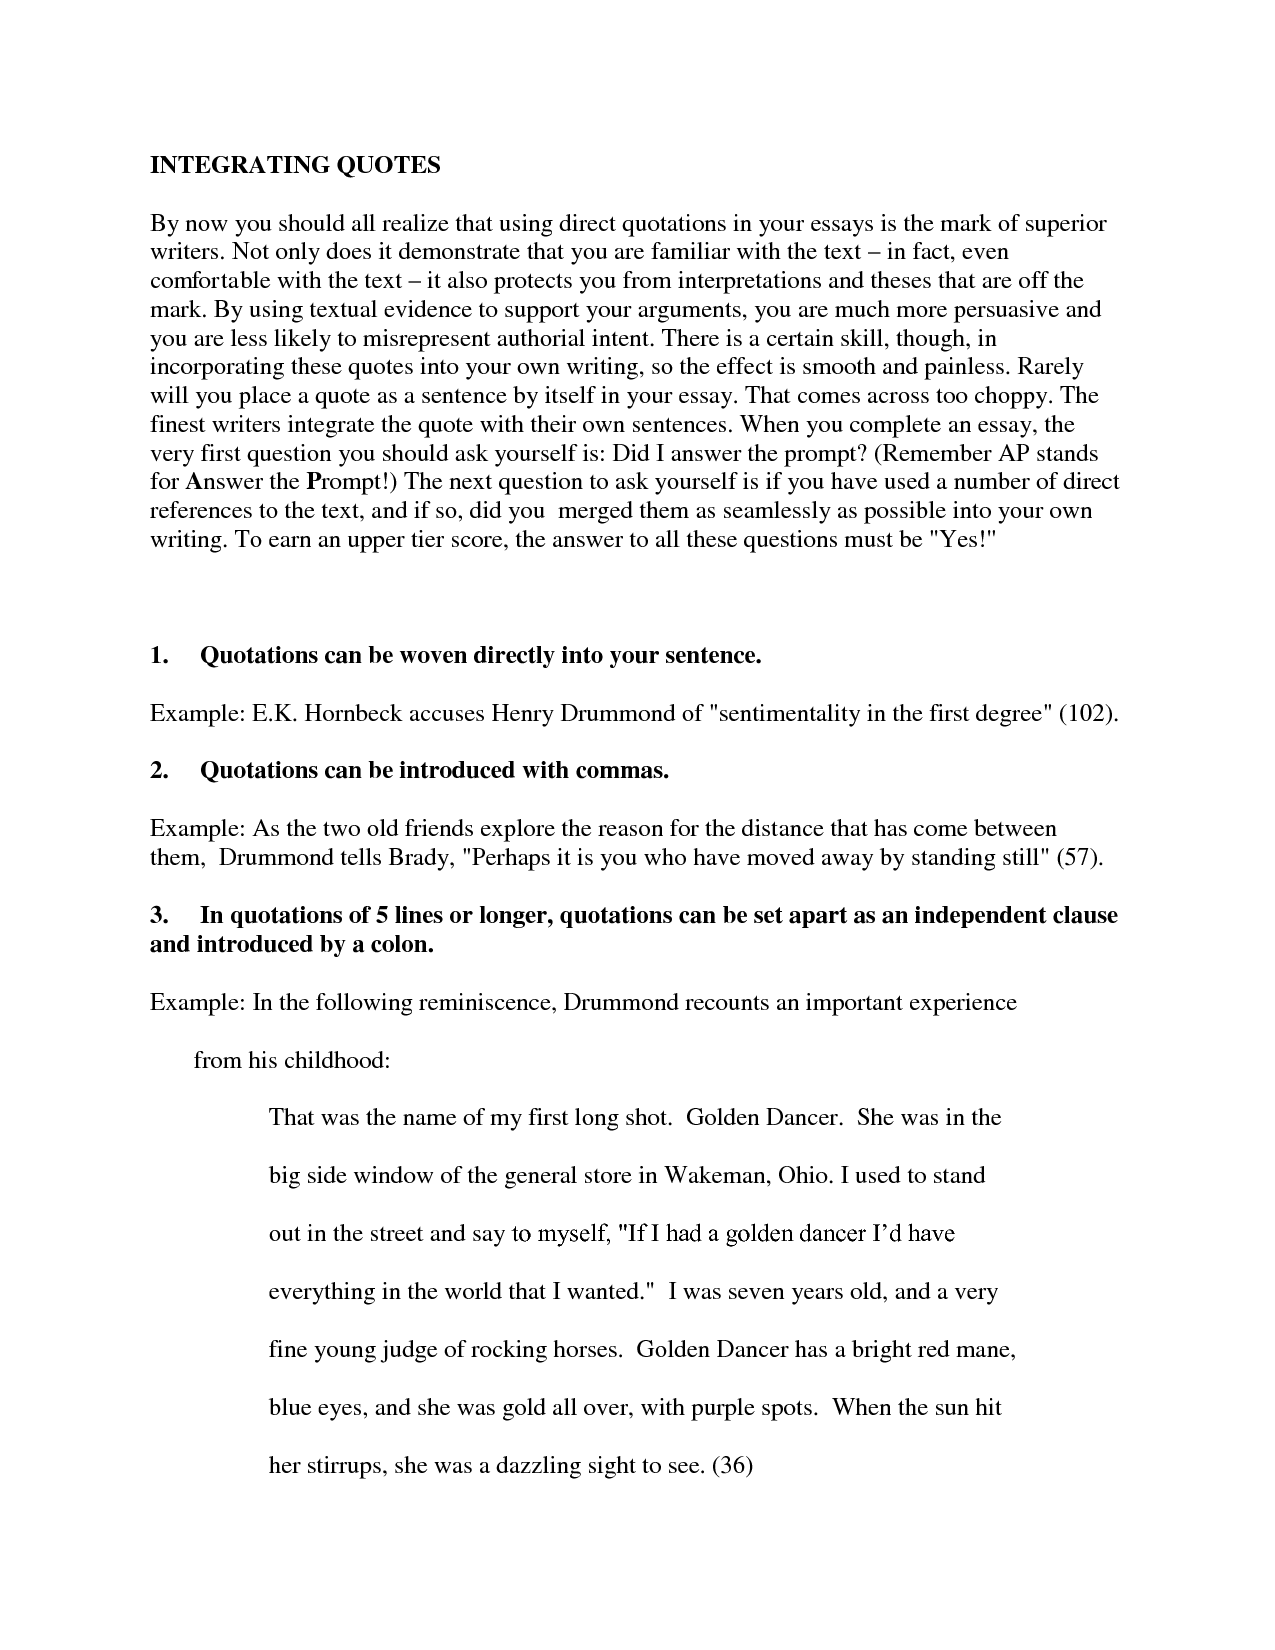 Long quotation in essay